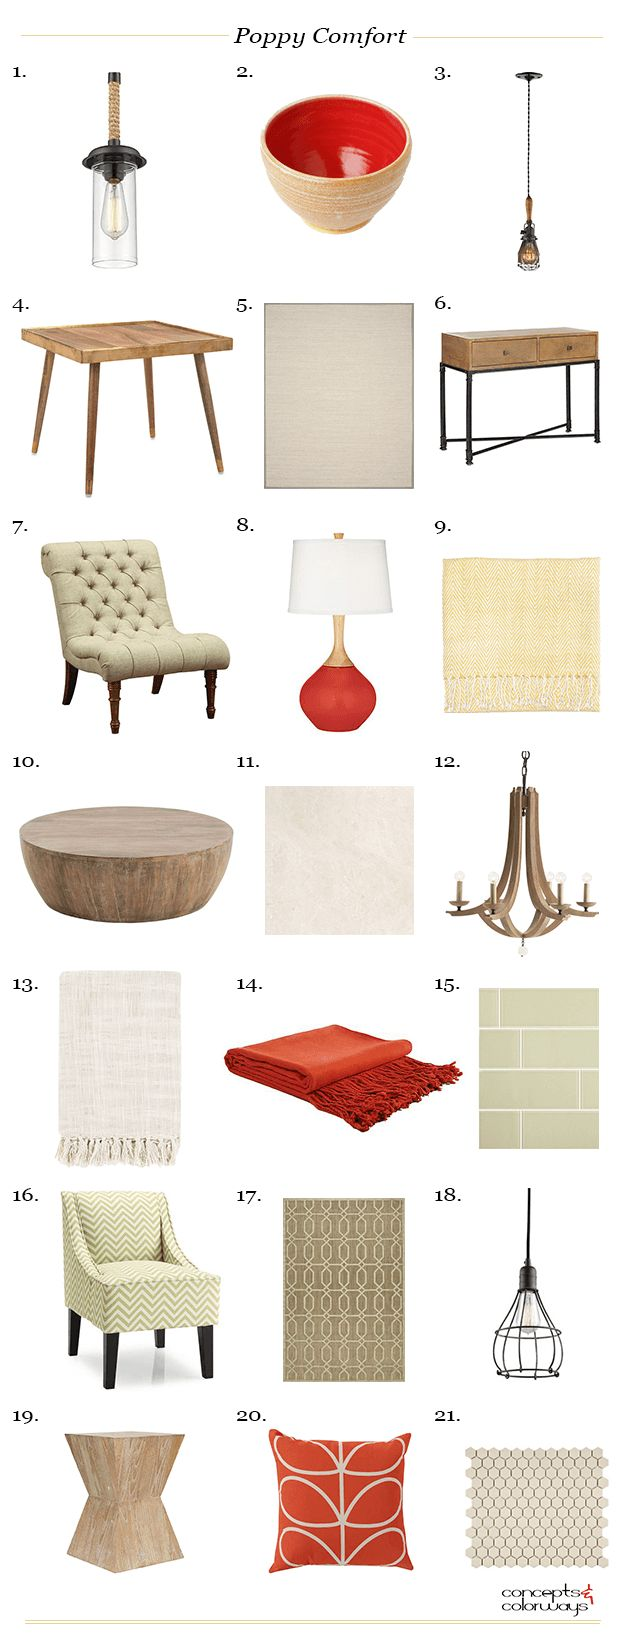 poppy red and khaki interior product roundup